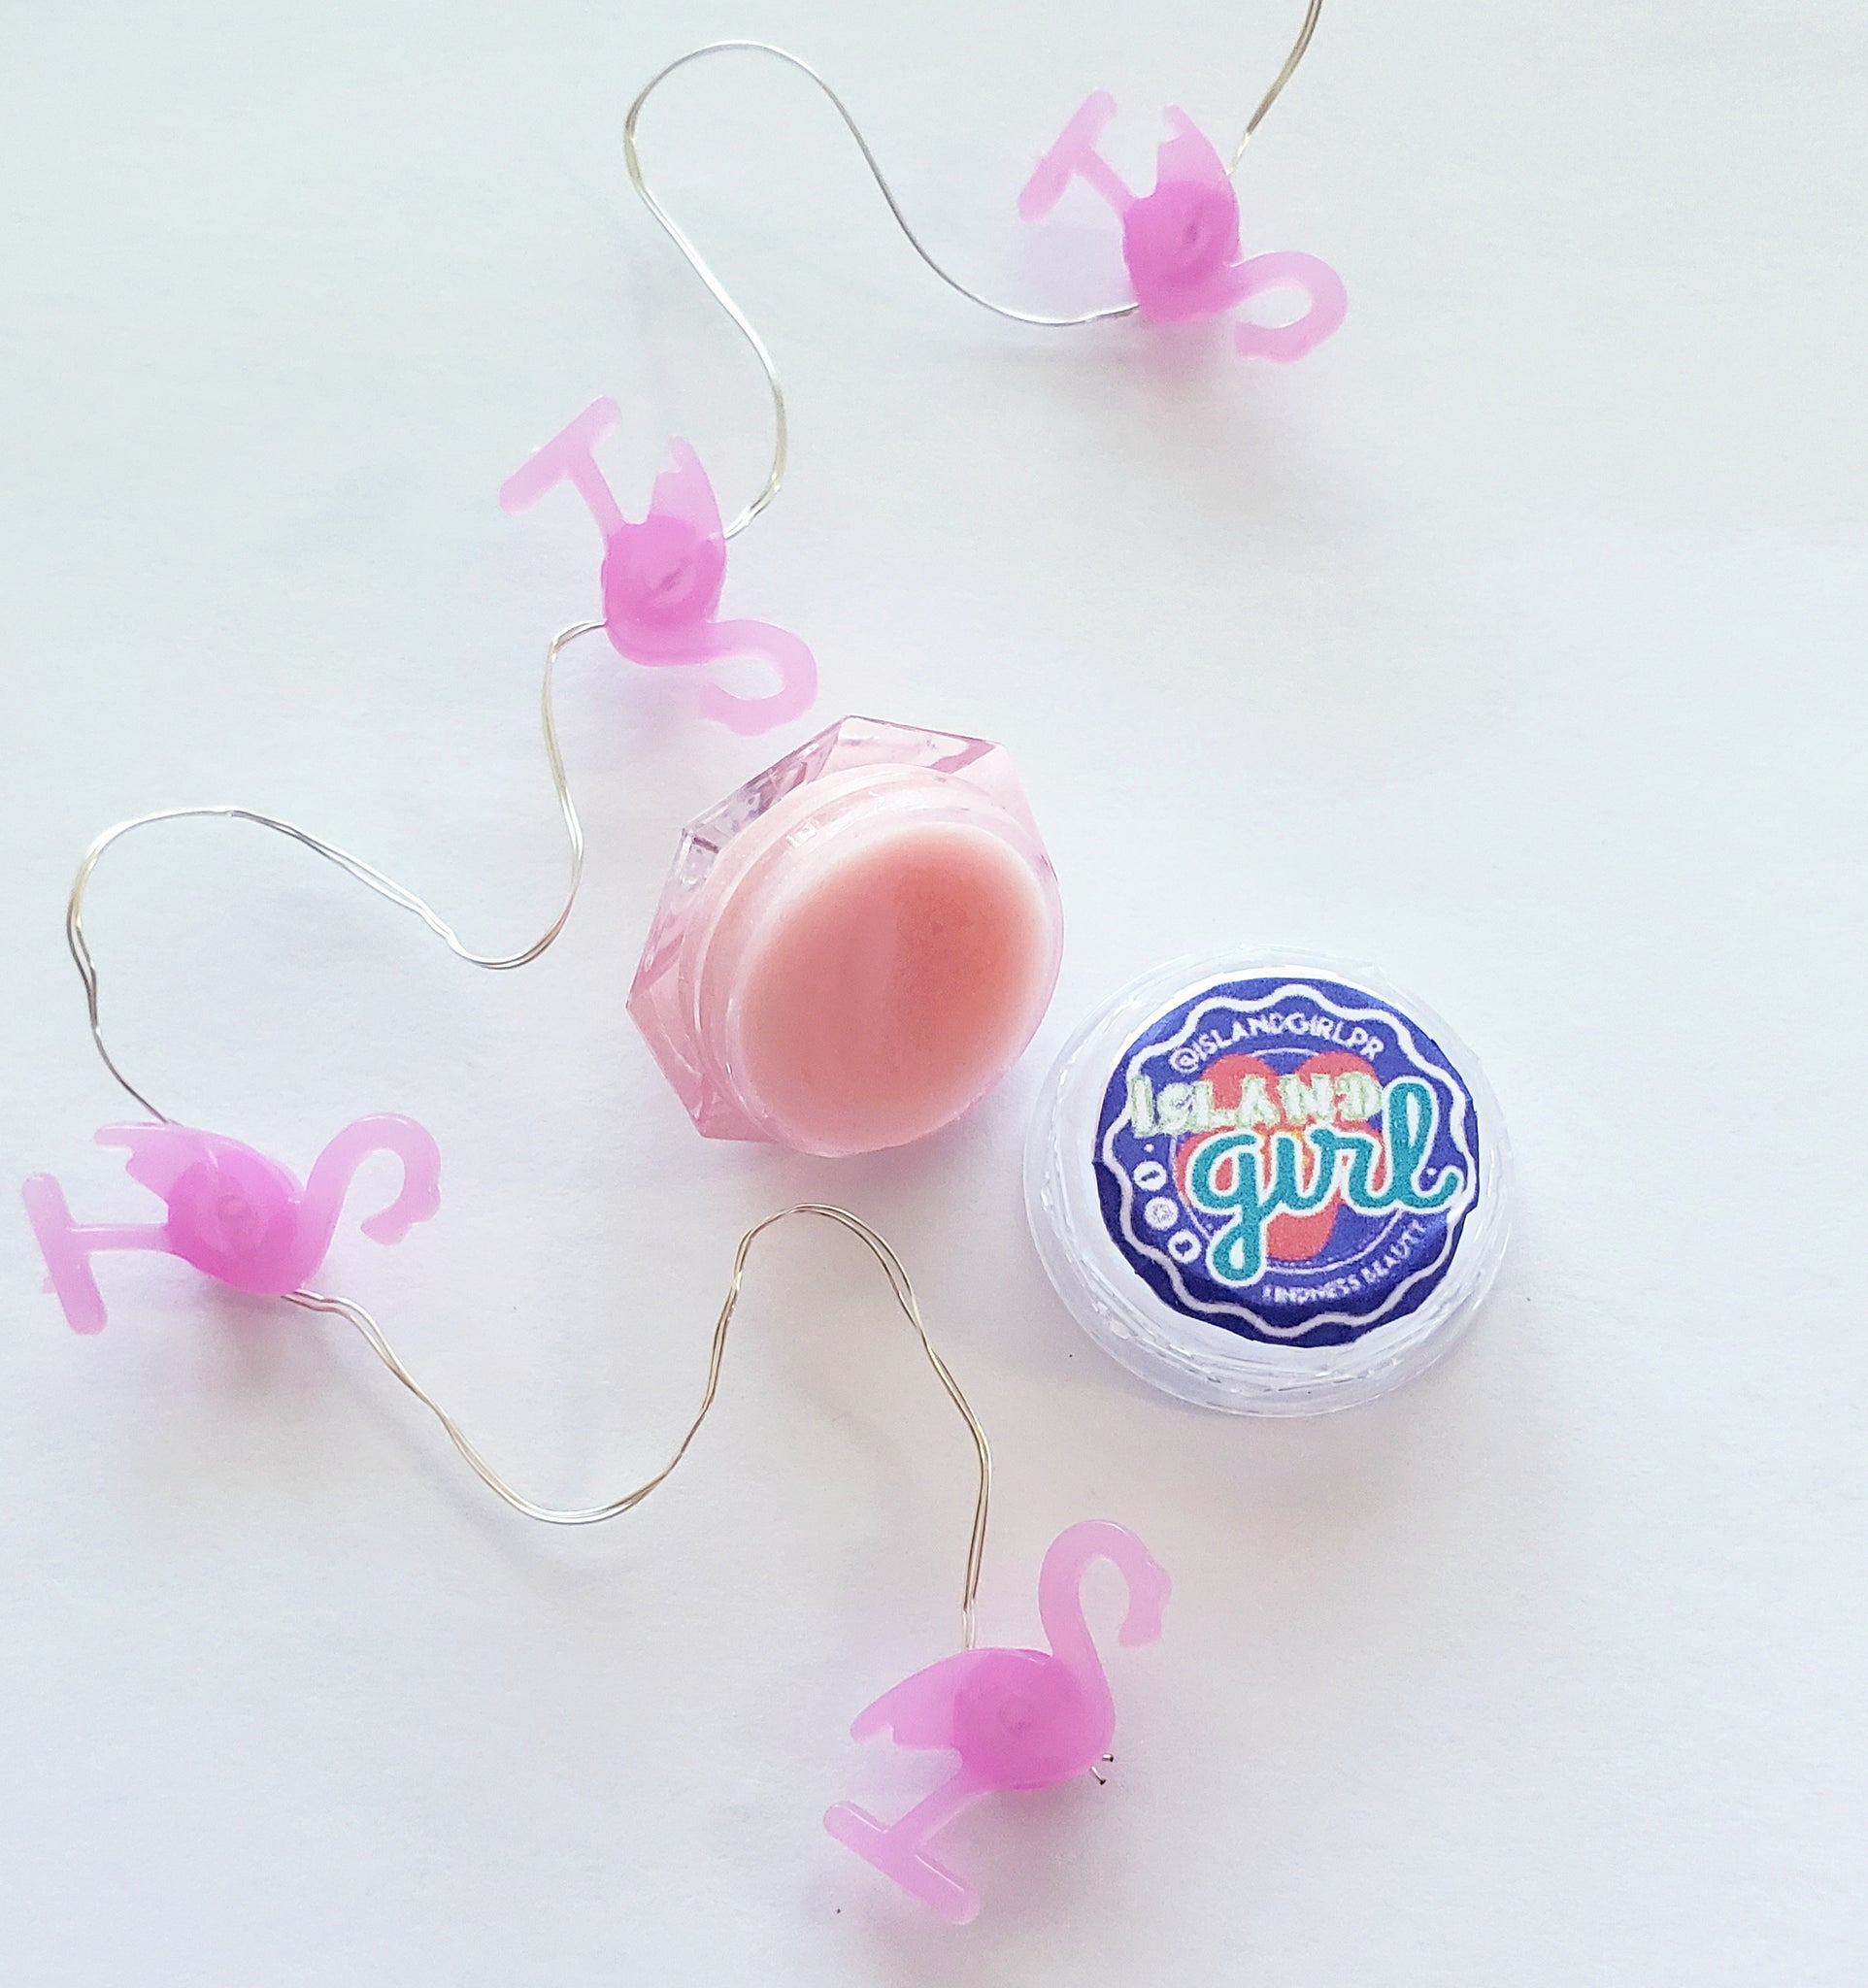 Tropical Love Solid Perfume